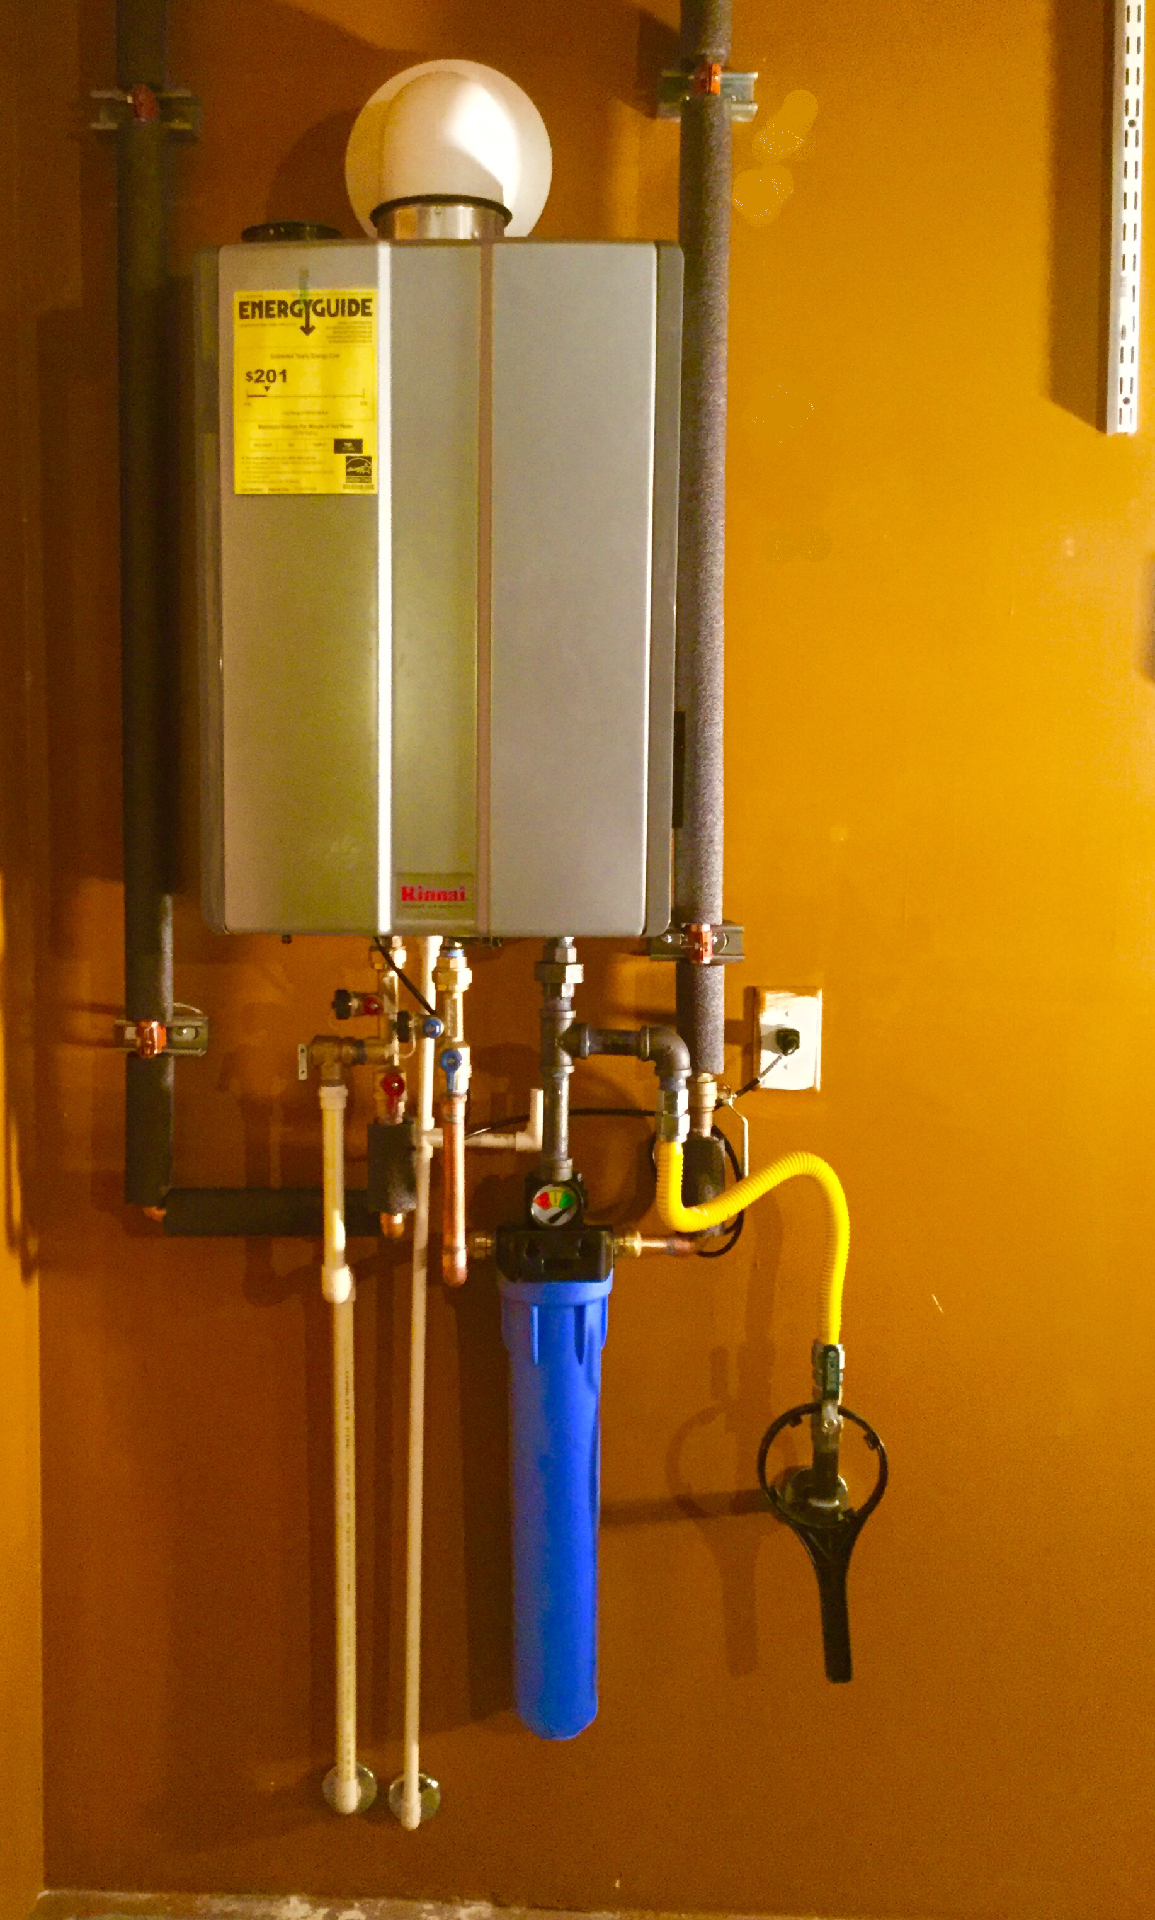 Installoftheweek Goes To Our Technician Steve For This Stunning Rinnai Tankless Water Heater Install Our Custome Tankless Water Heater Water Heater Heater